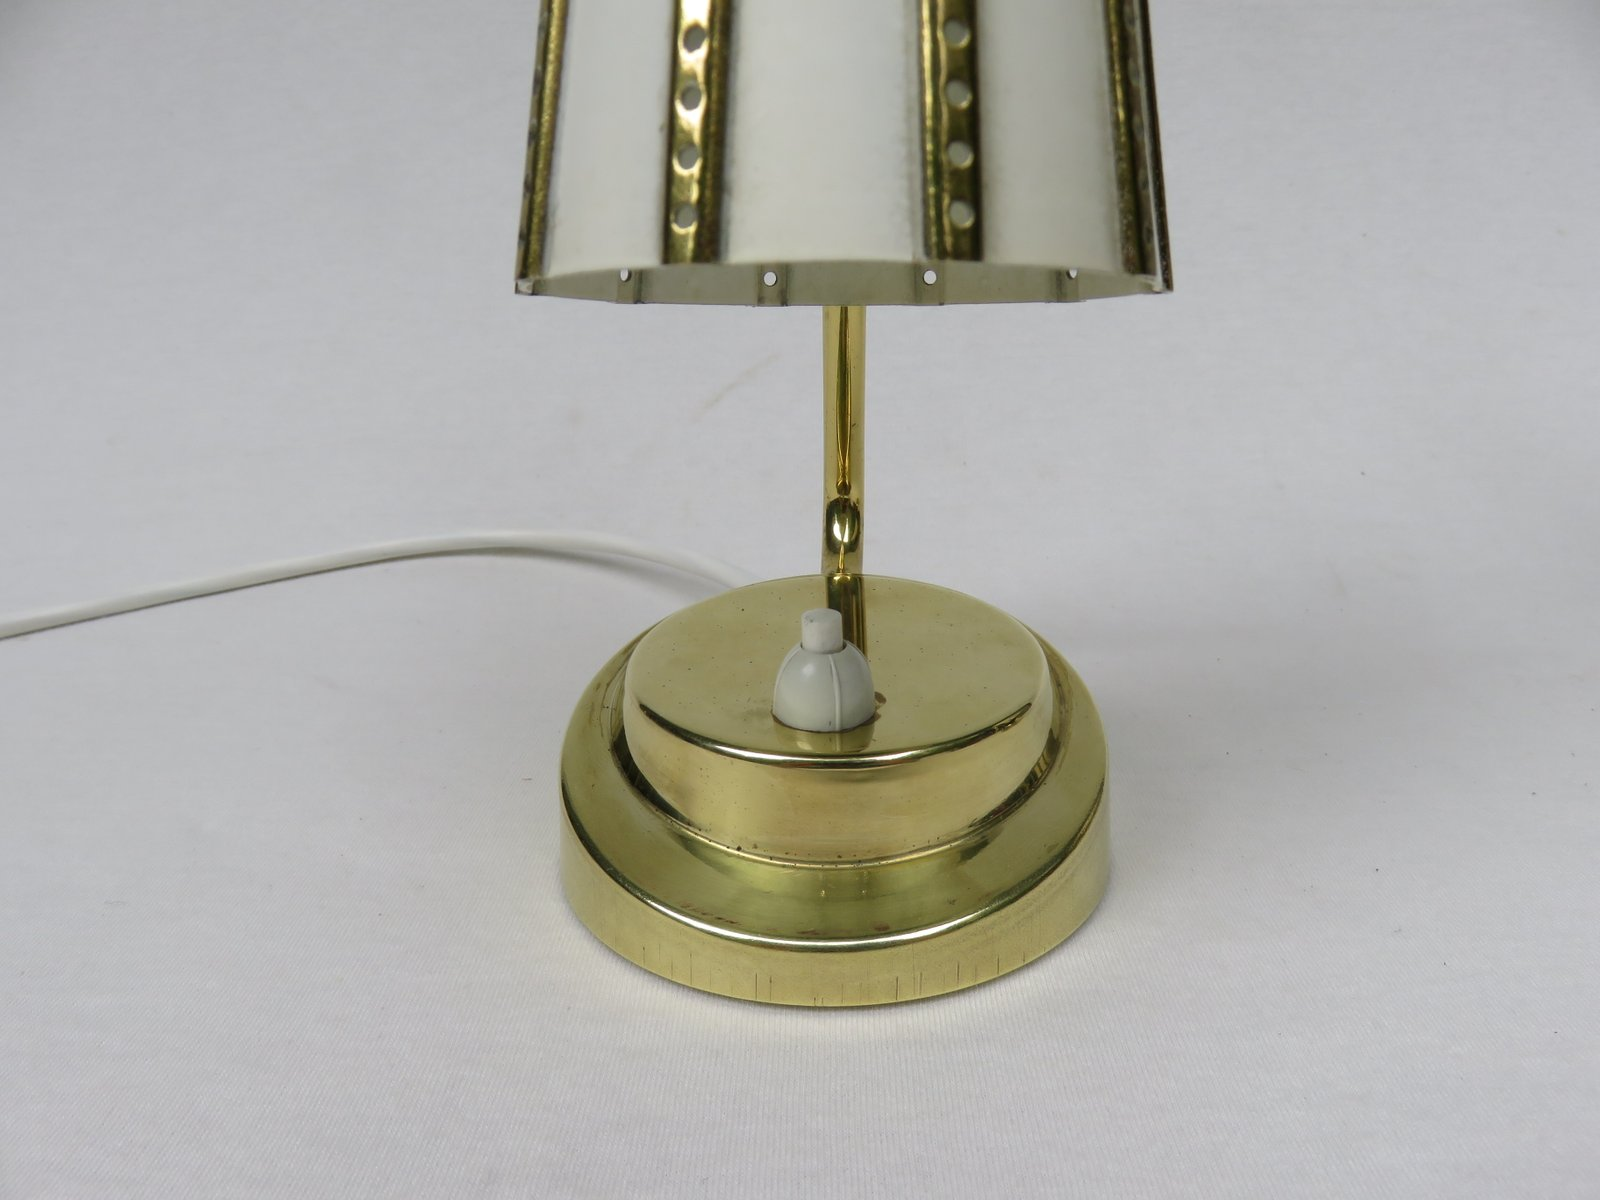 Brass Bedside Wall Lamps : Italian Brass Bedside Lamps, 1950s, Set of 2 for sale at Pamono